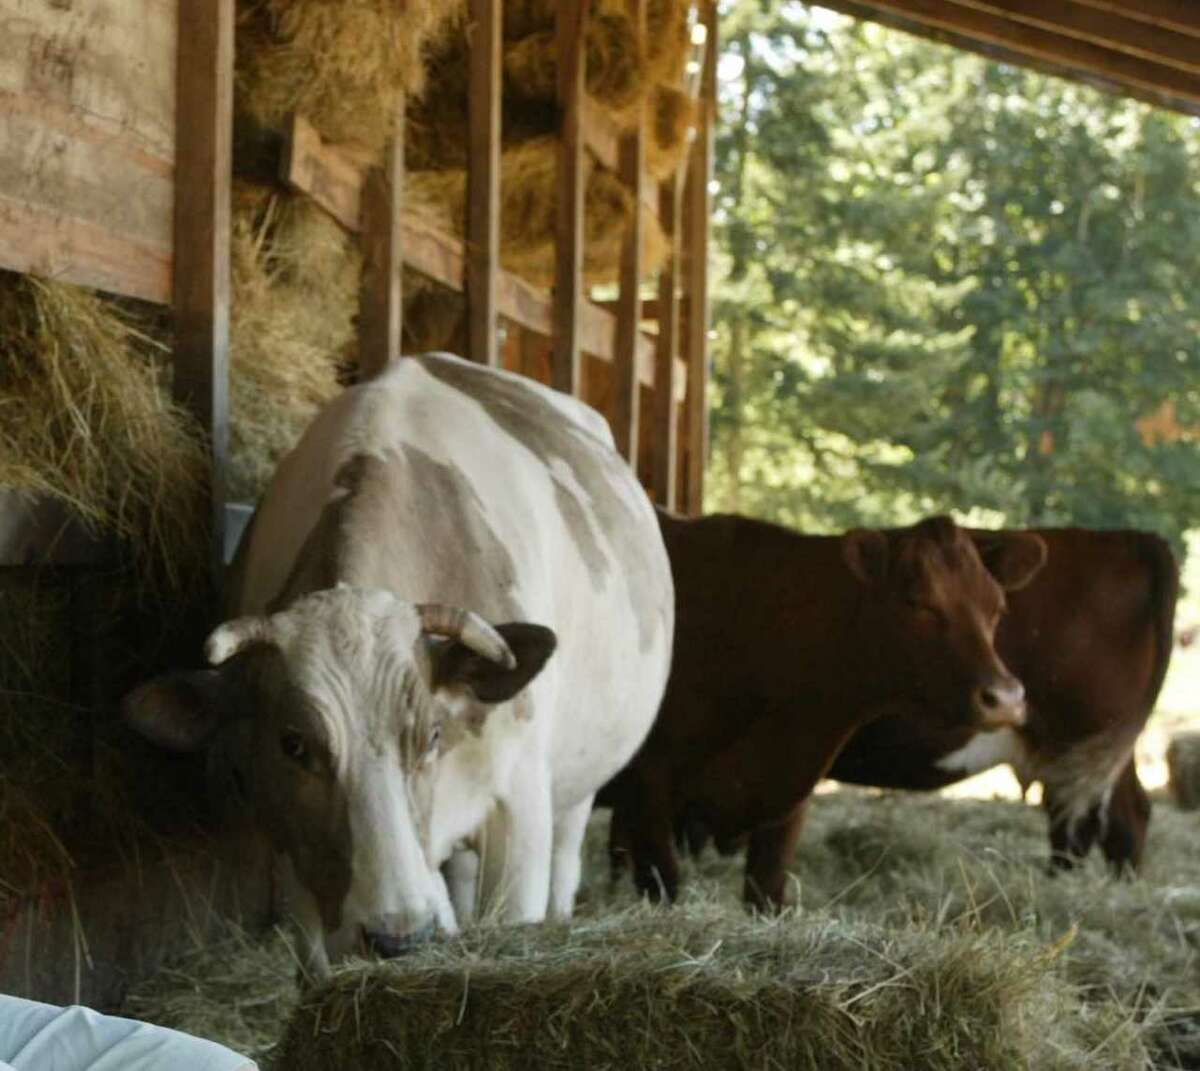 Beefalo on a farm on Camano Island in Washington state. The Facebook post also offered